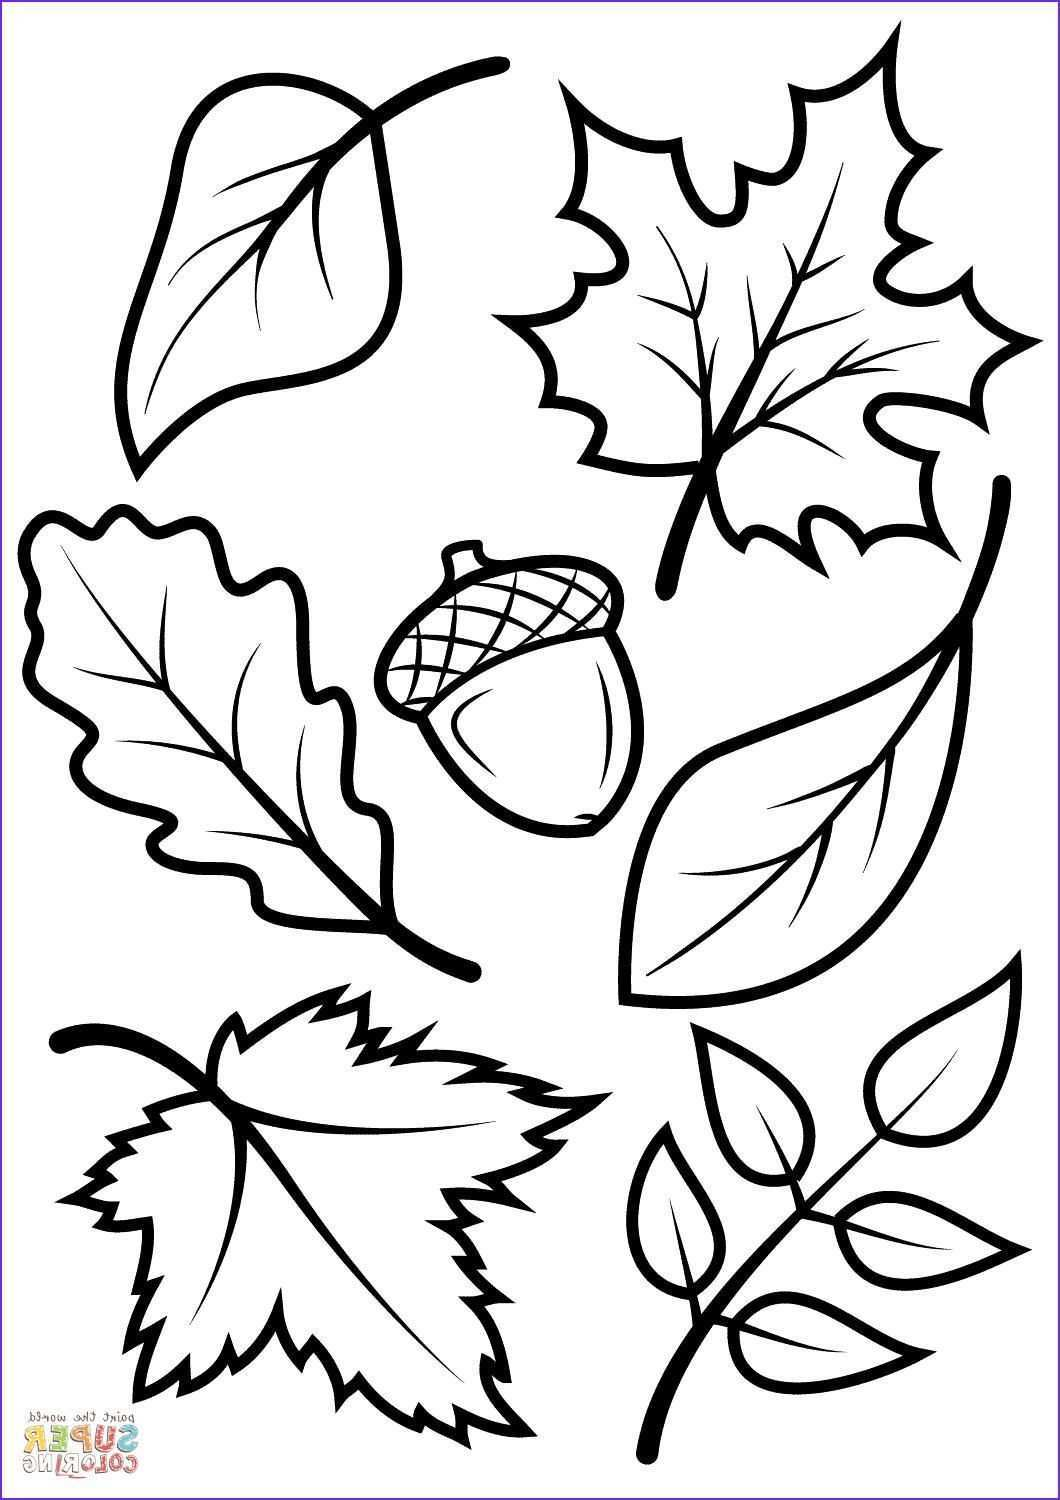 42 Coloring Page Leaves Fensterbilderherbstvorlagen Fine Coloring Page Leaves That You Must Know Blattschablone Fensterbilder Herbst Vorlagen Blatt Schablone